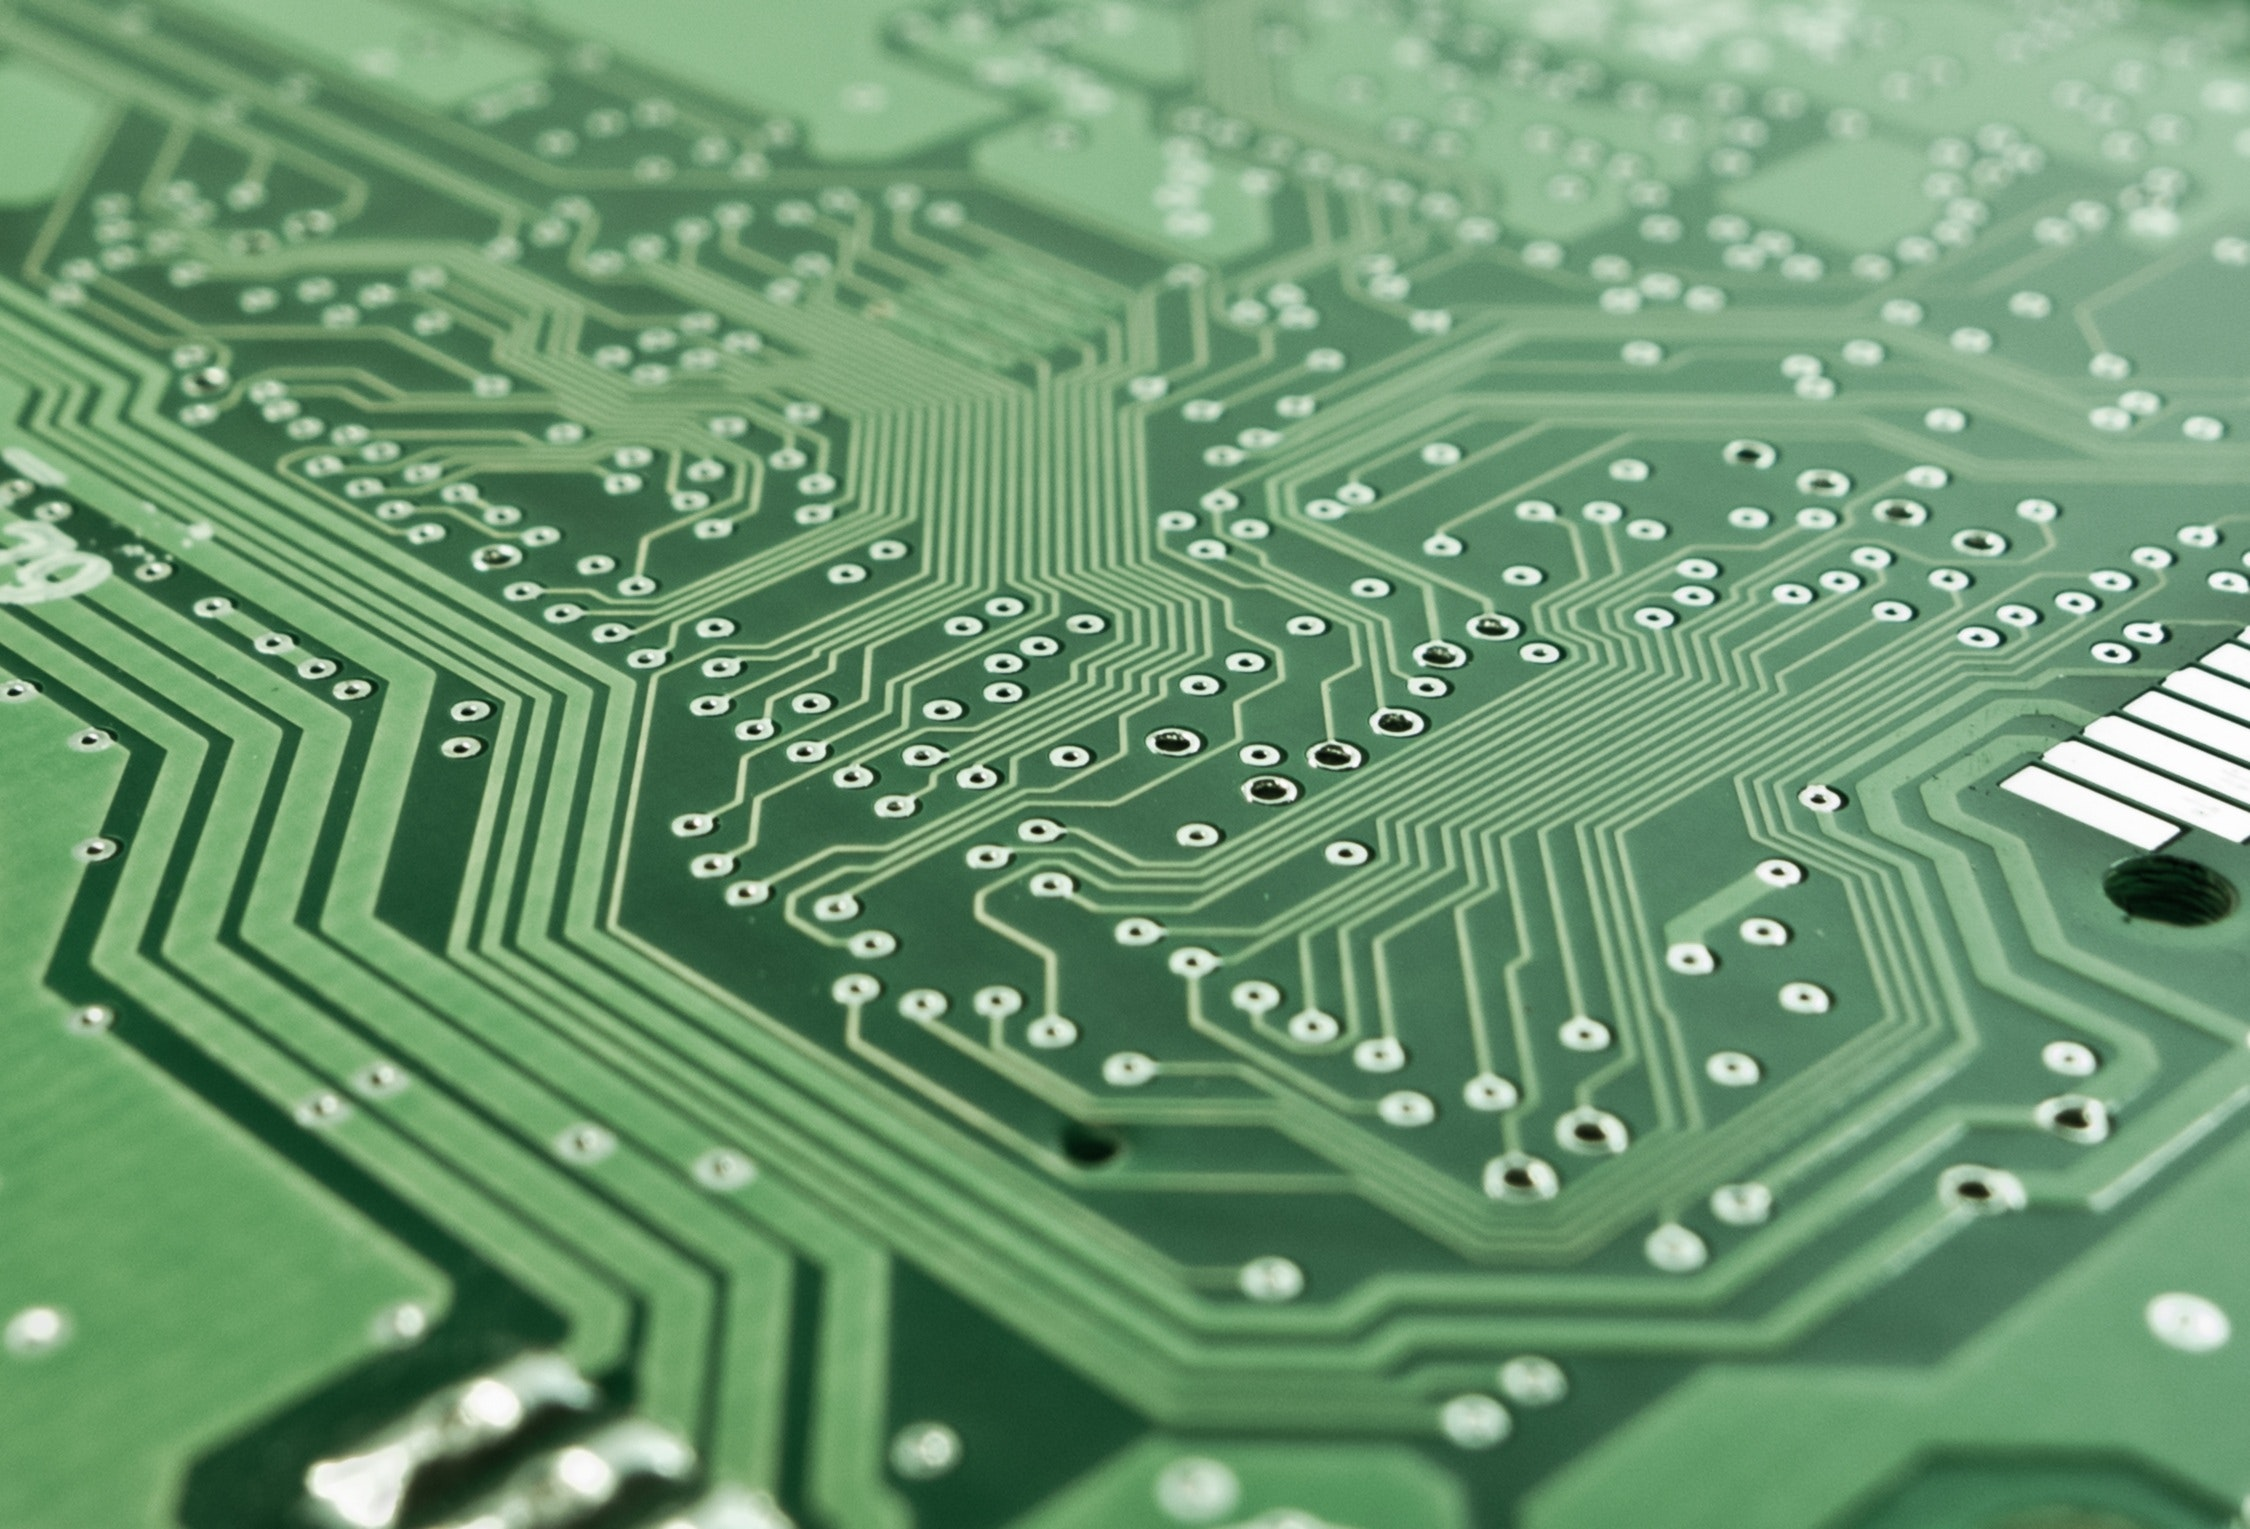 500 amazing circuit board photos pexels free stock photos rh pexels com Windows 10 HD Wallpapers Circuit Board Design